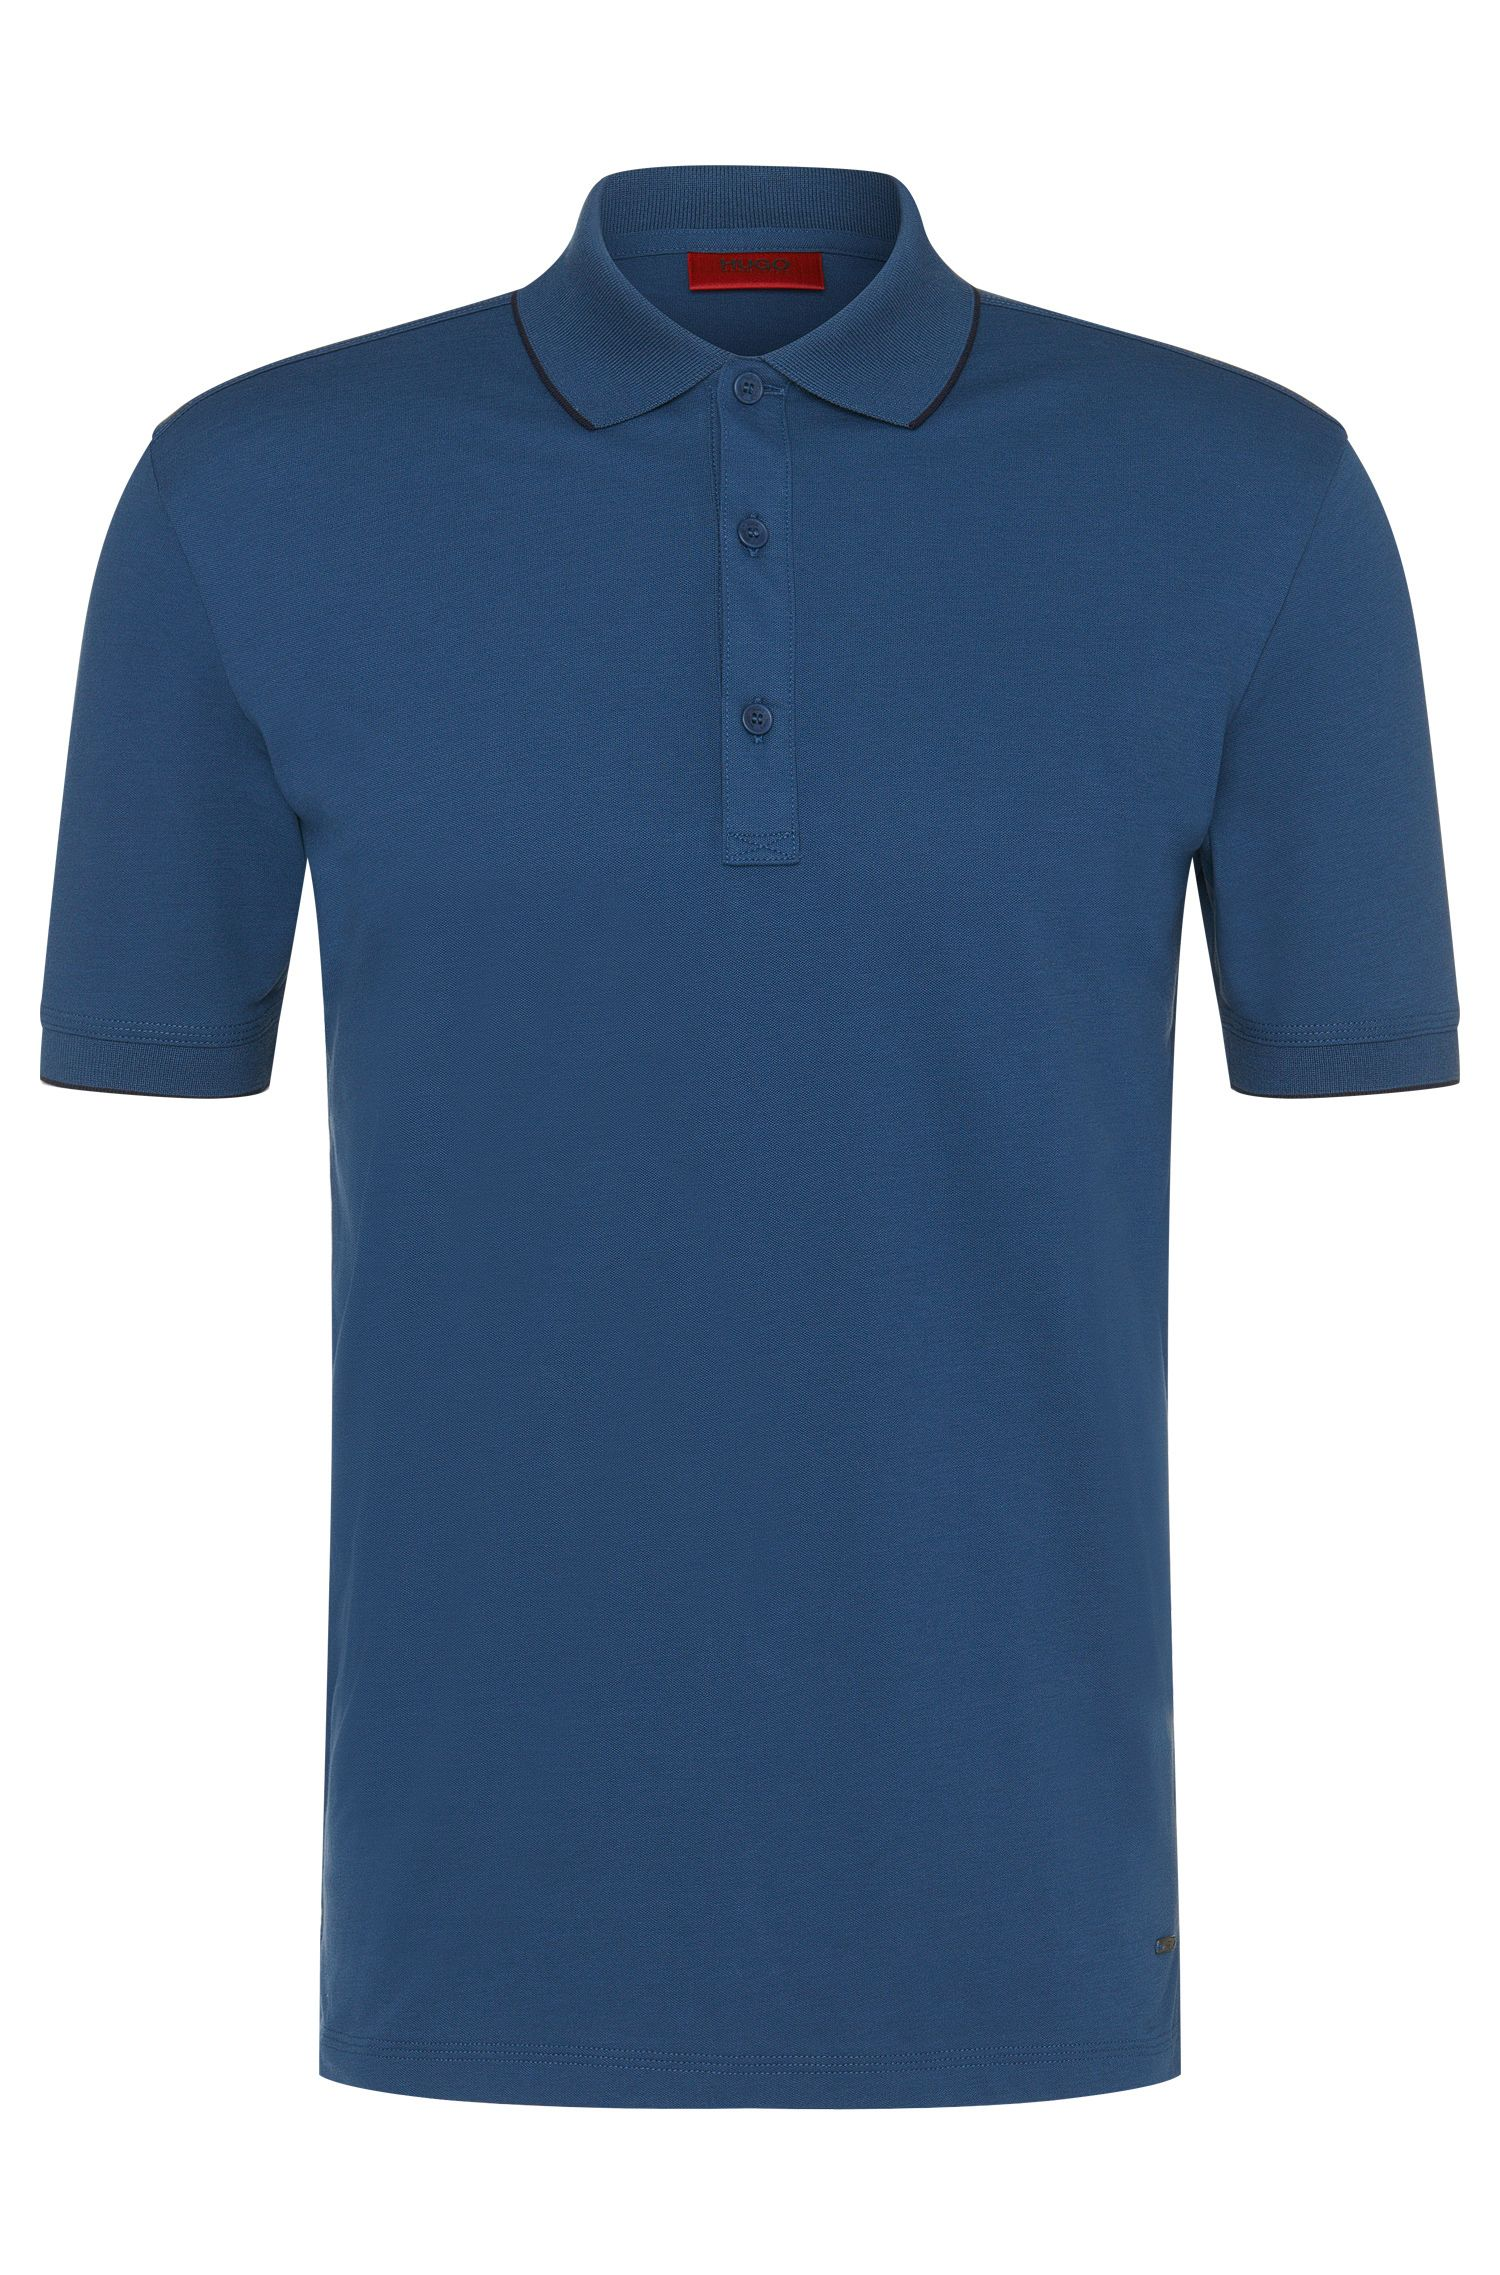 Regular-Fit Poloshirt aus Stretch-Baumwolle: 'Delorian'